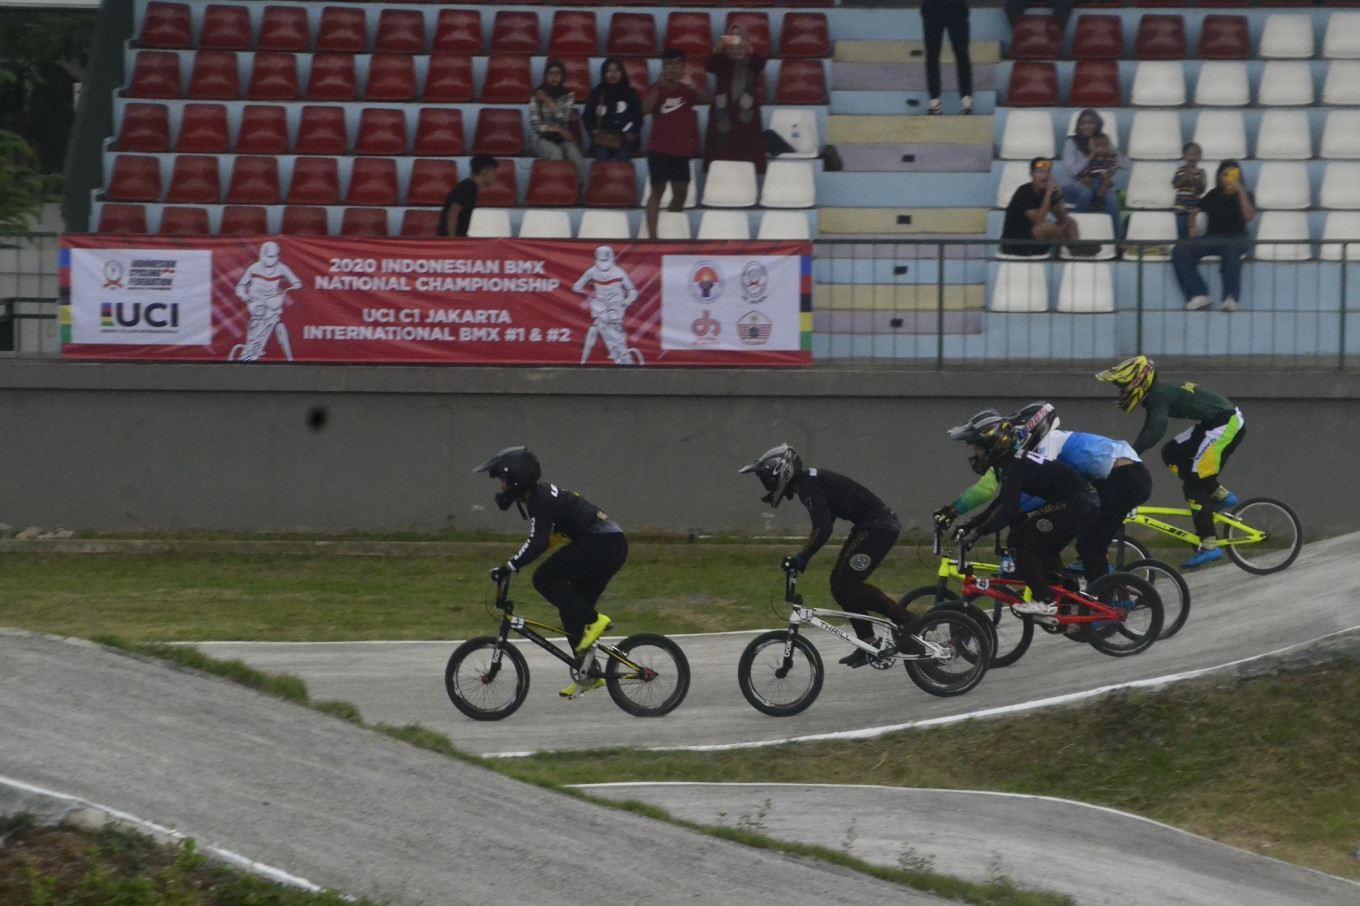 Indonesian BMX rider battles injury to keep Olympic dream alive